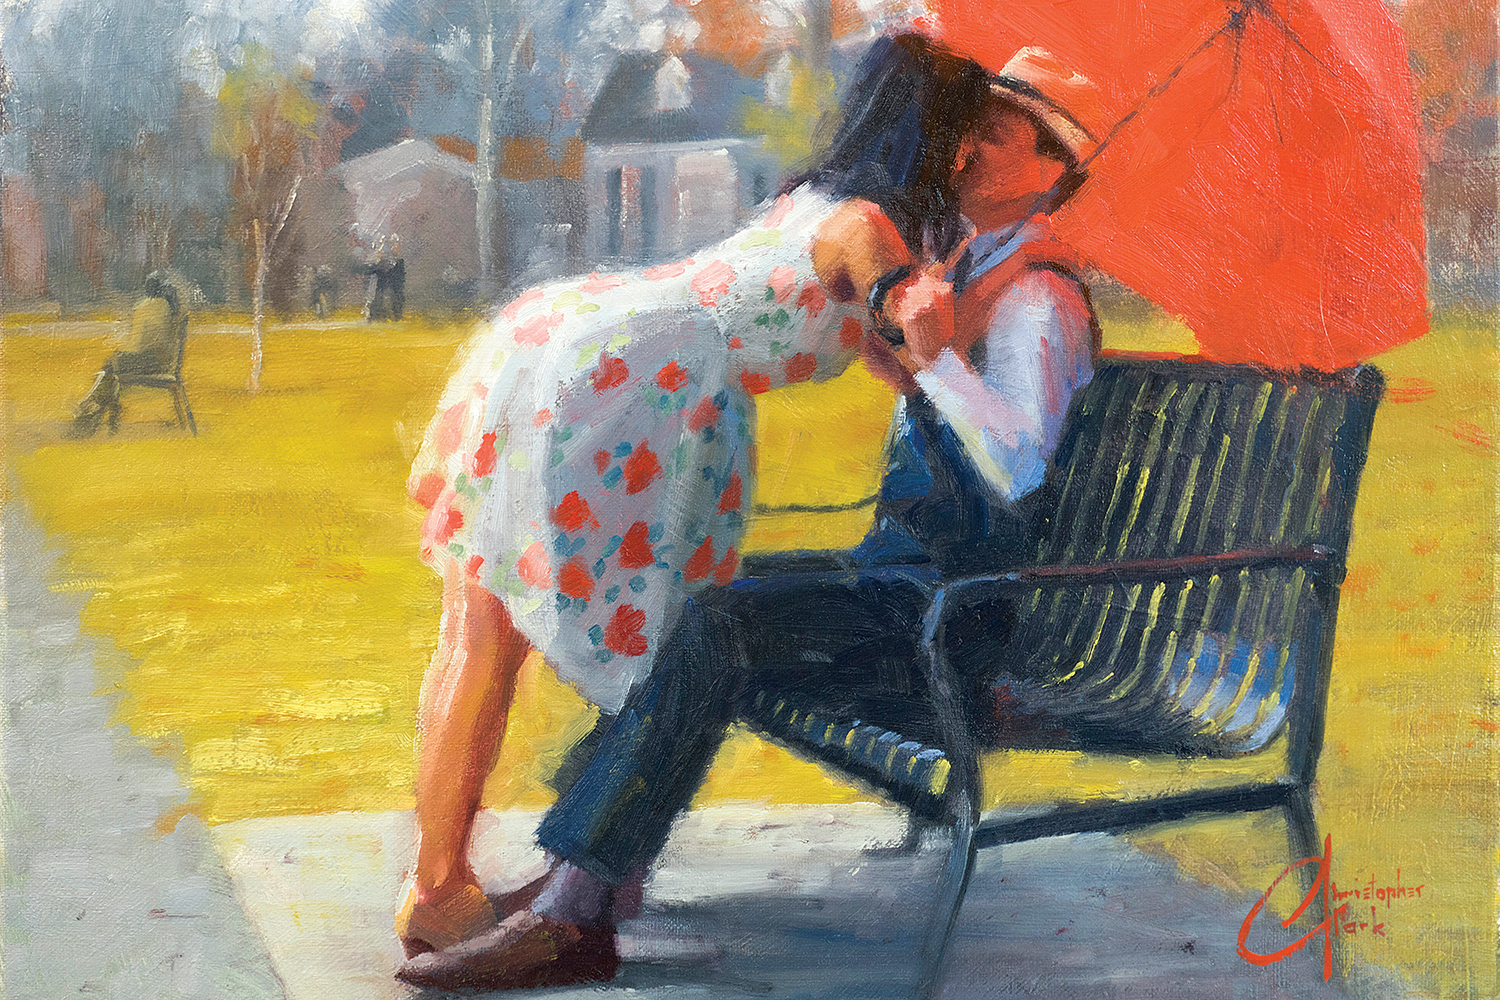 a man sitting on a bench in a suit and hat holding a red umbrella with a woman in a dress leaning over and kissing him